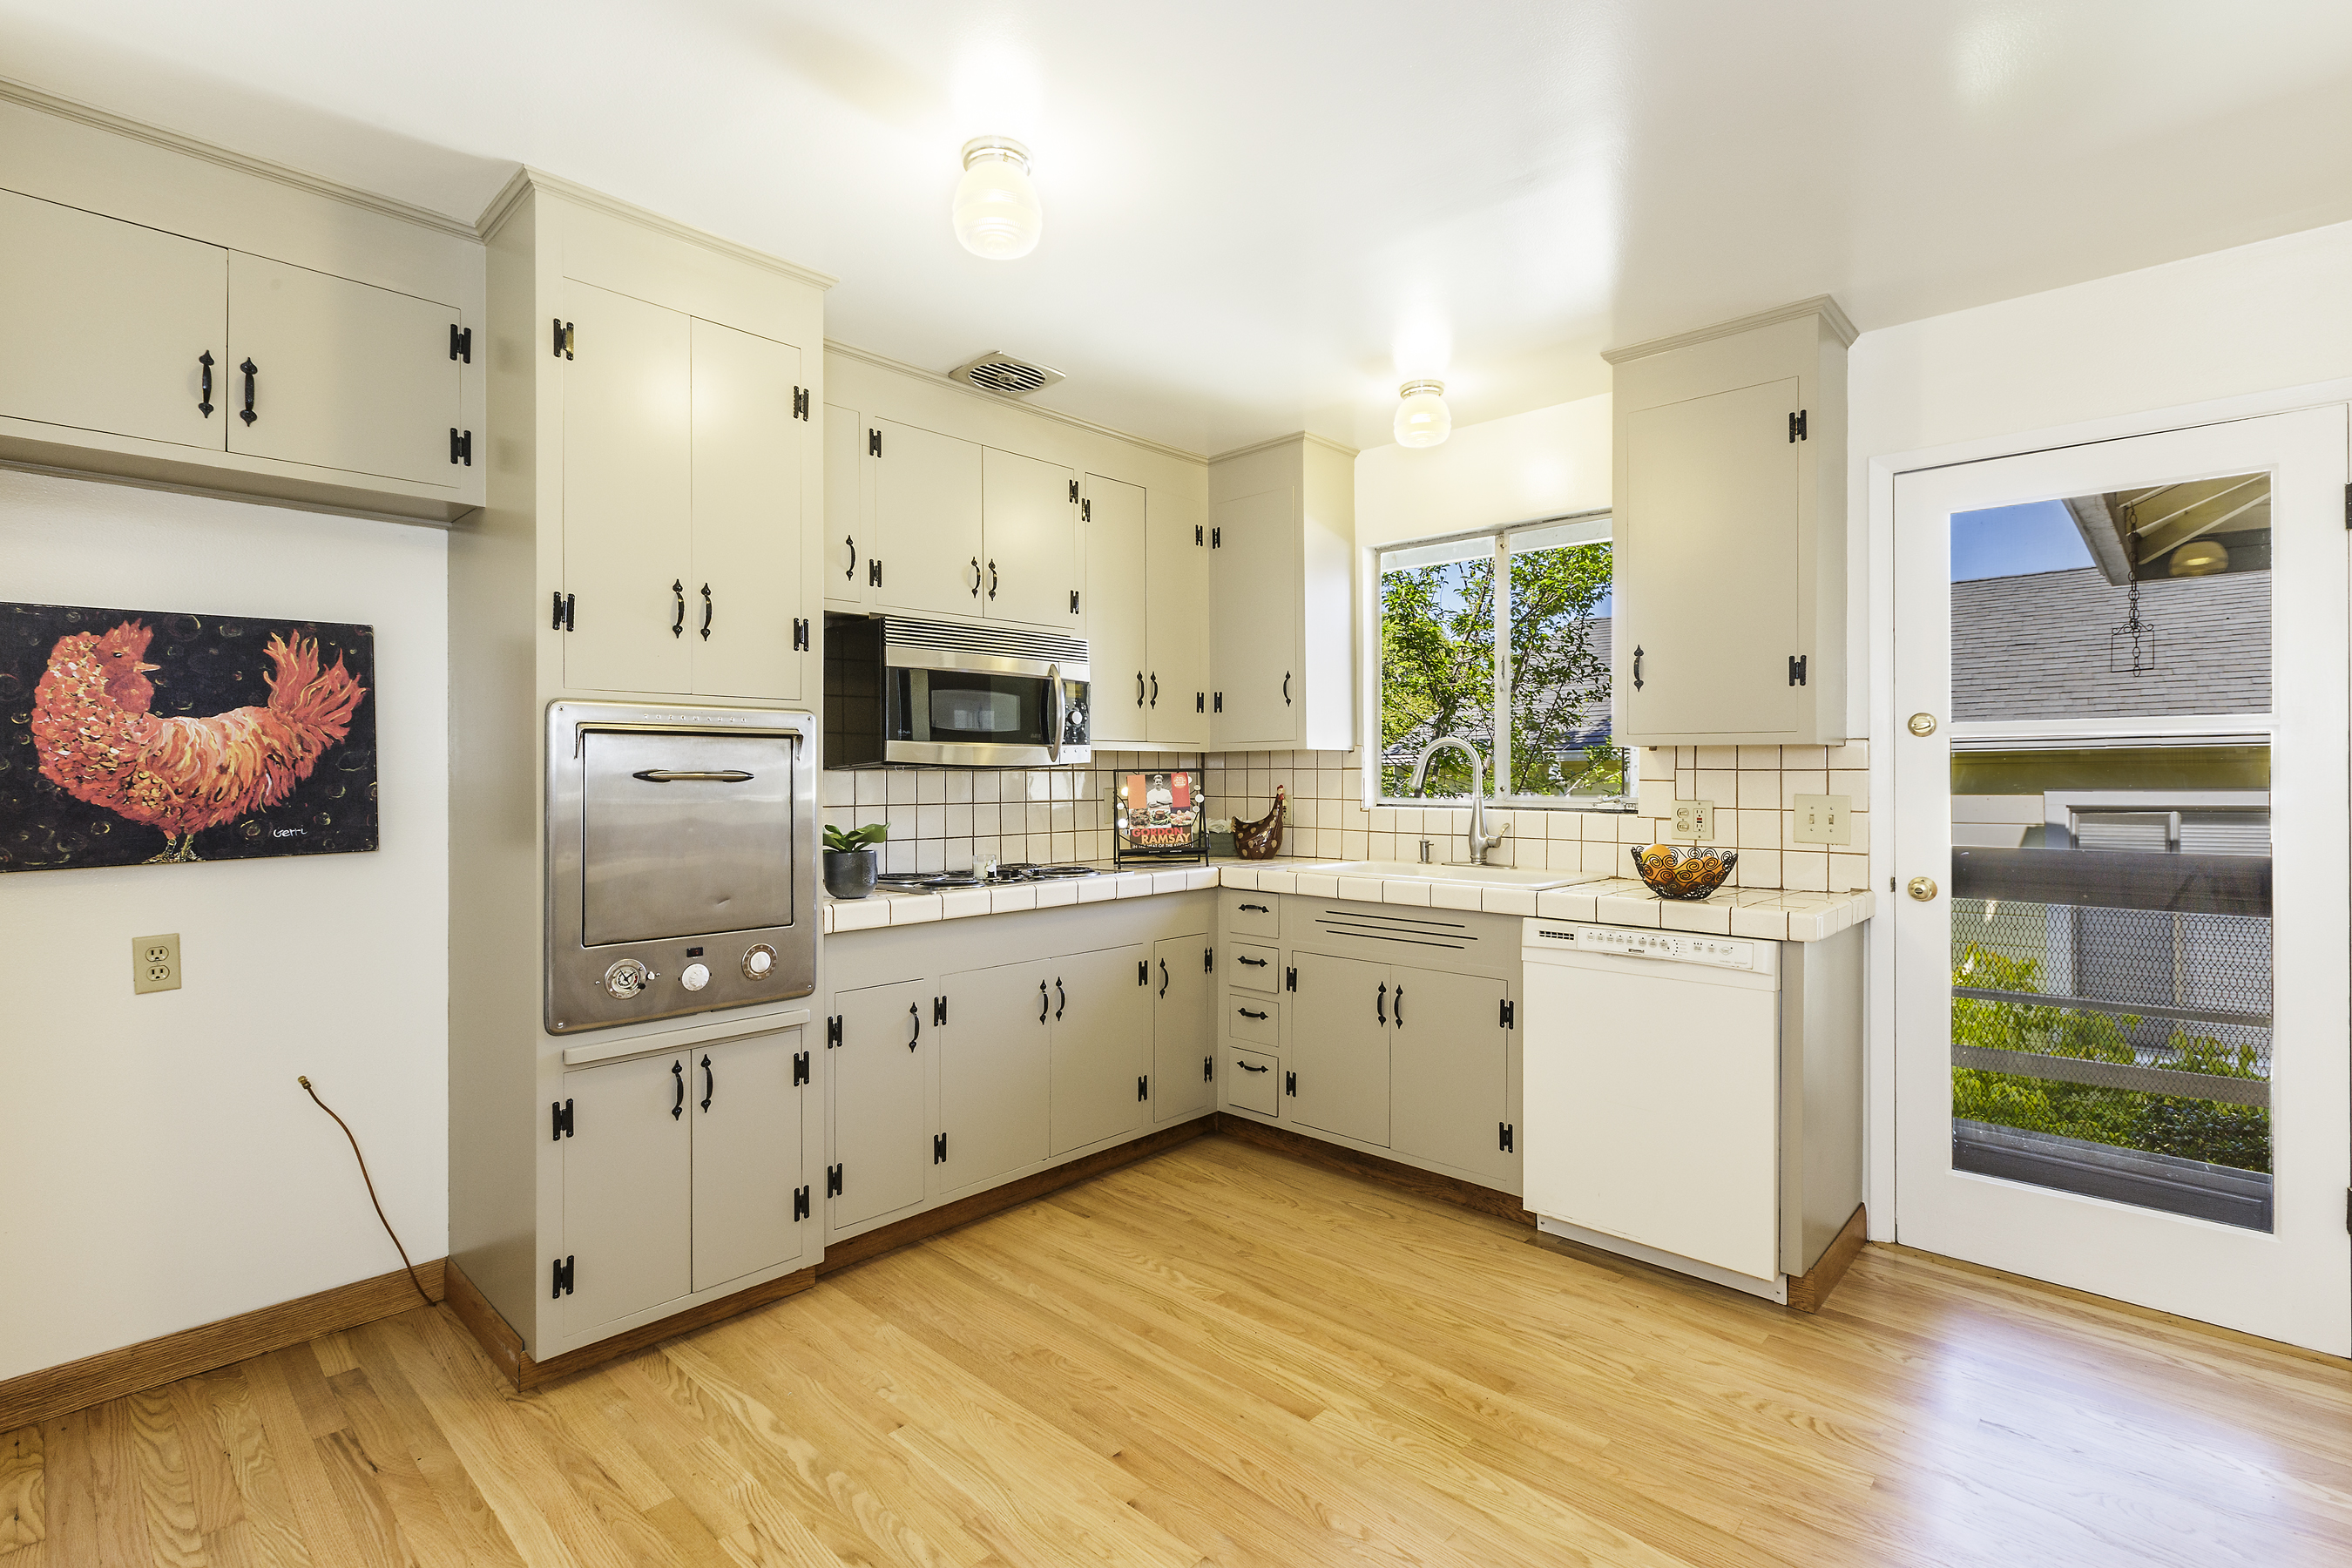 08-2608-Thornhill-kitchen-high-res